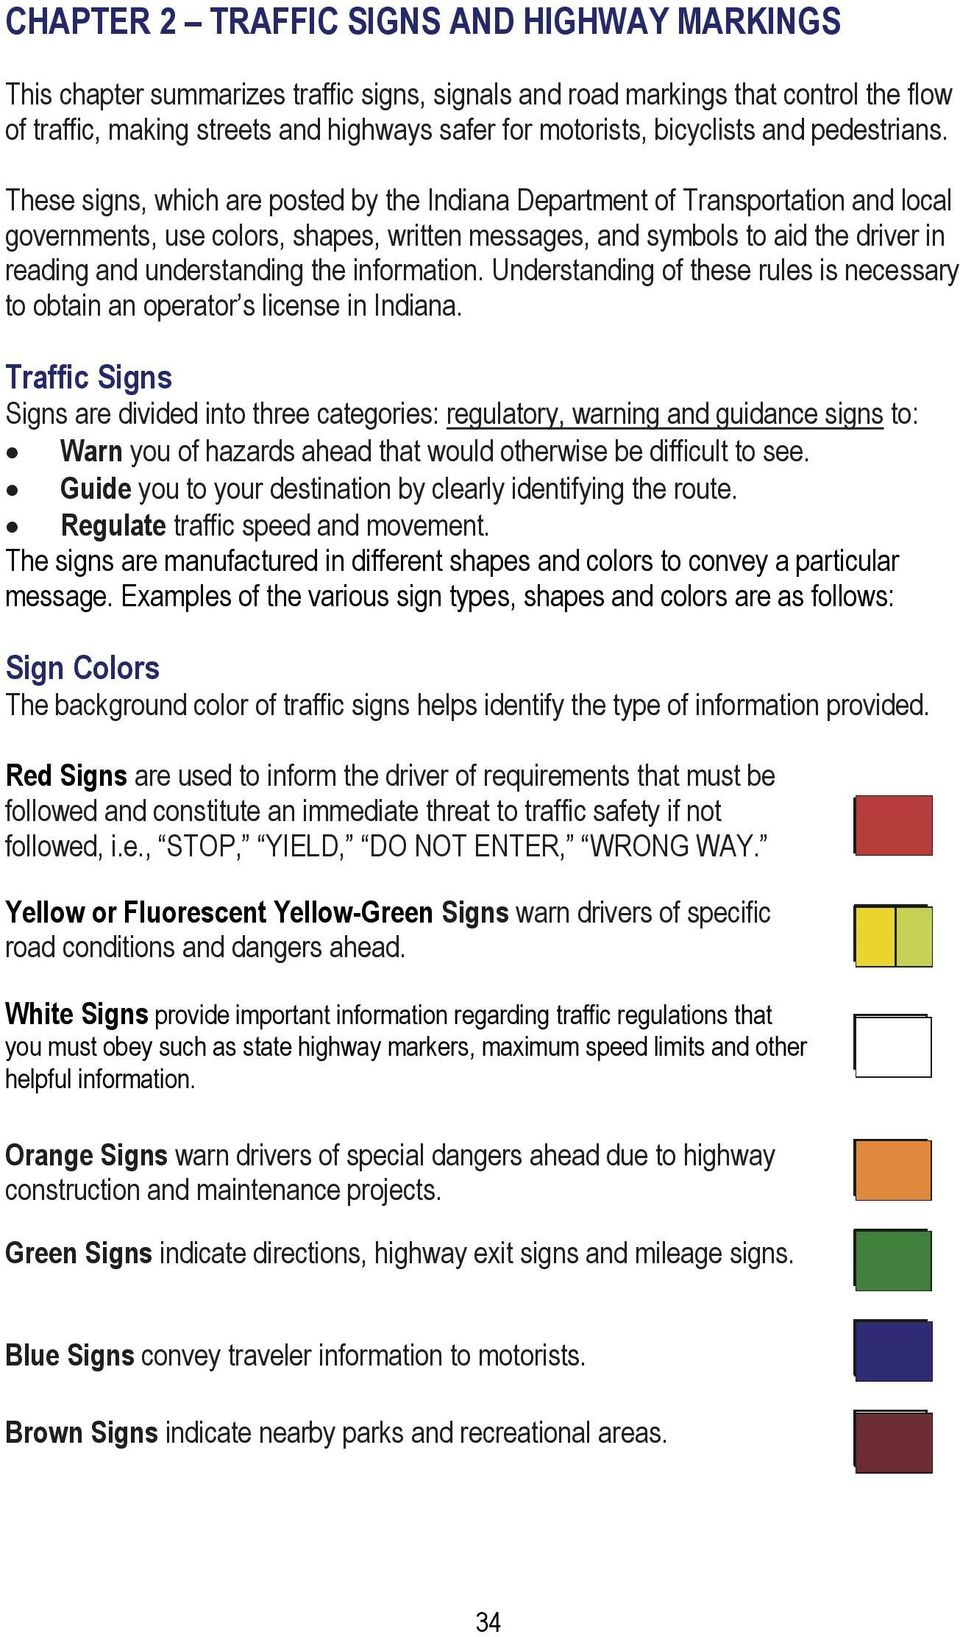 These signs, which are posted by the Indiana Department of Transportation and local governments, use colors, shapes, written messages, and symbols to aid the driver in reading and understanding the